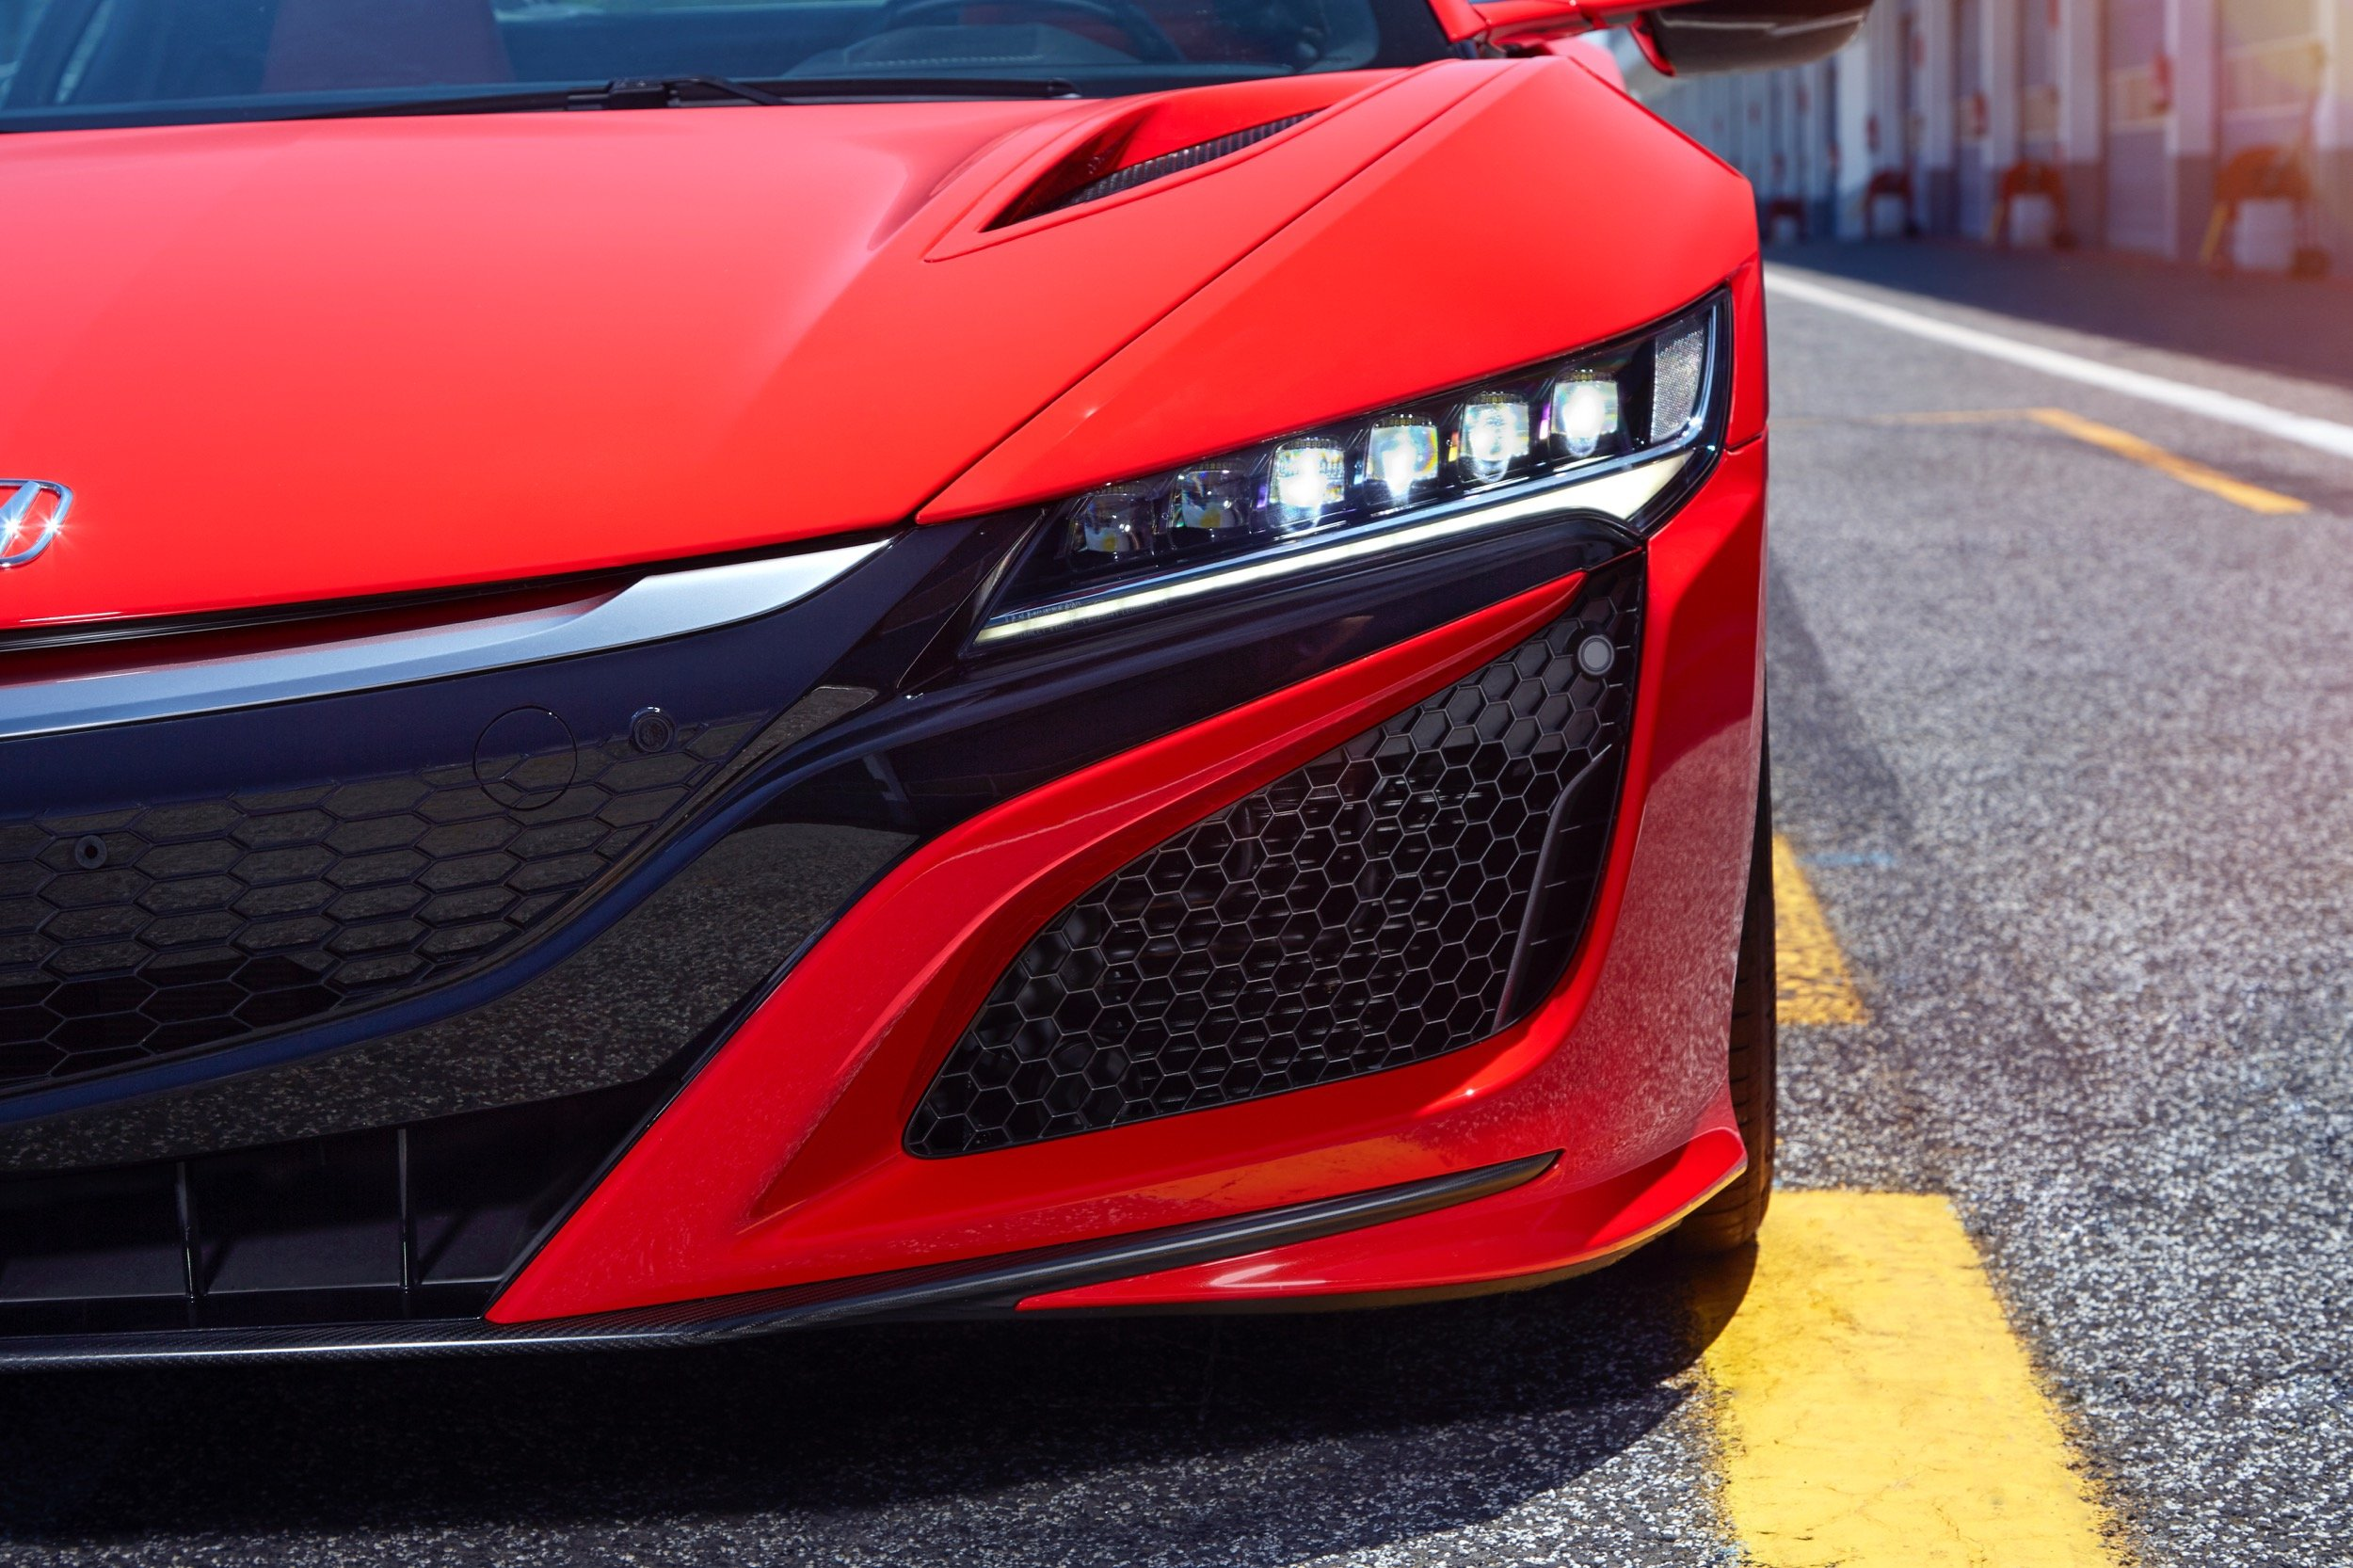 2017-Honda-NSX-Review-11.jpg